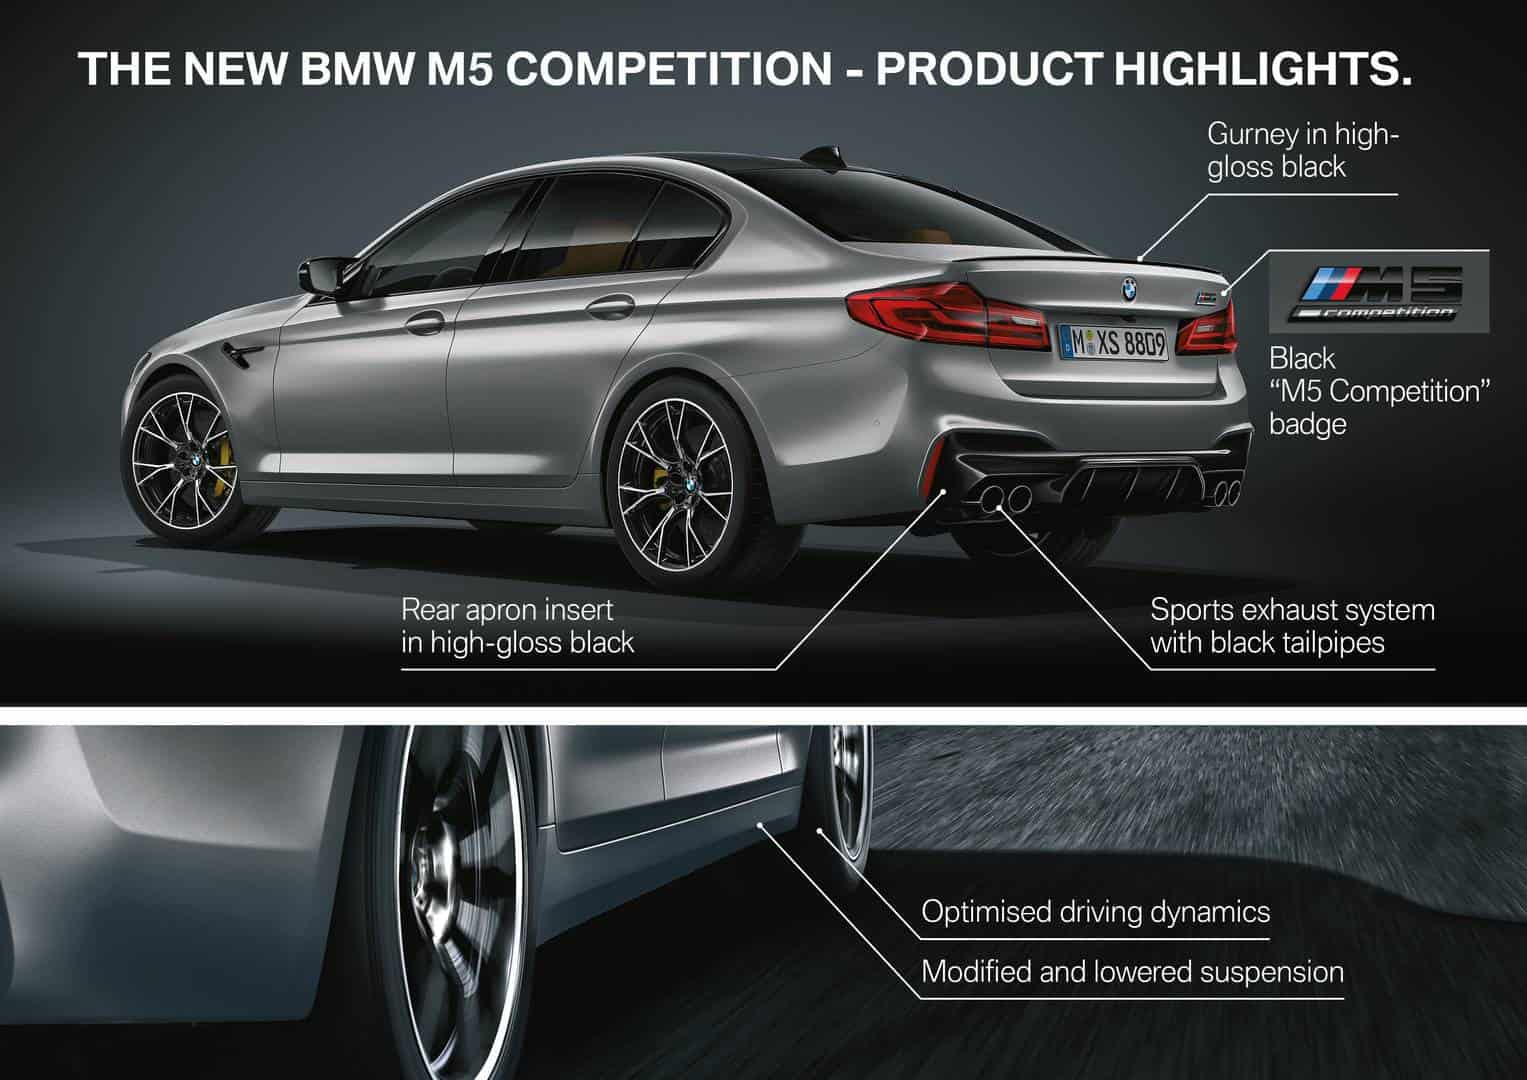 2019 BMW F90 M5 Competition 5